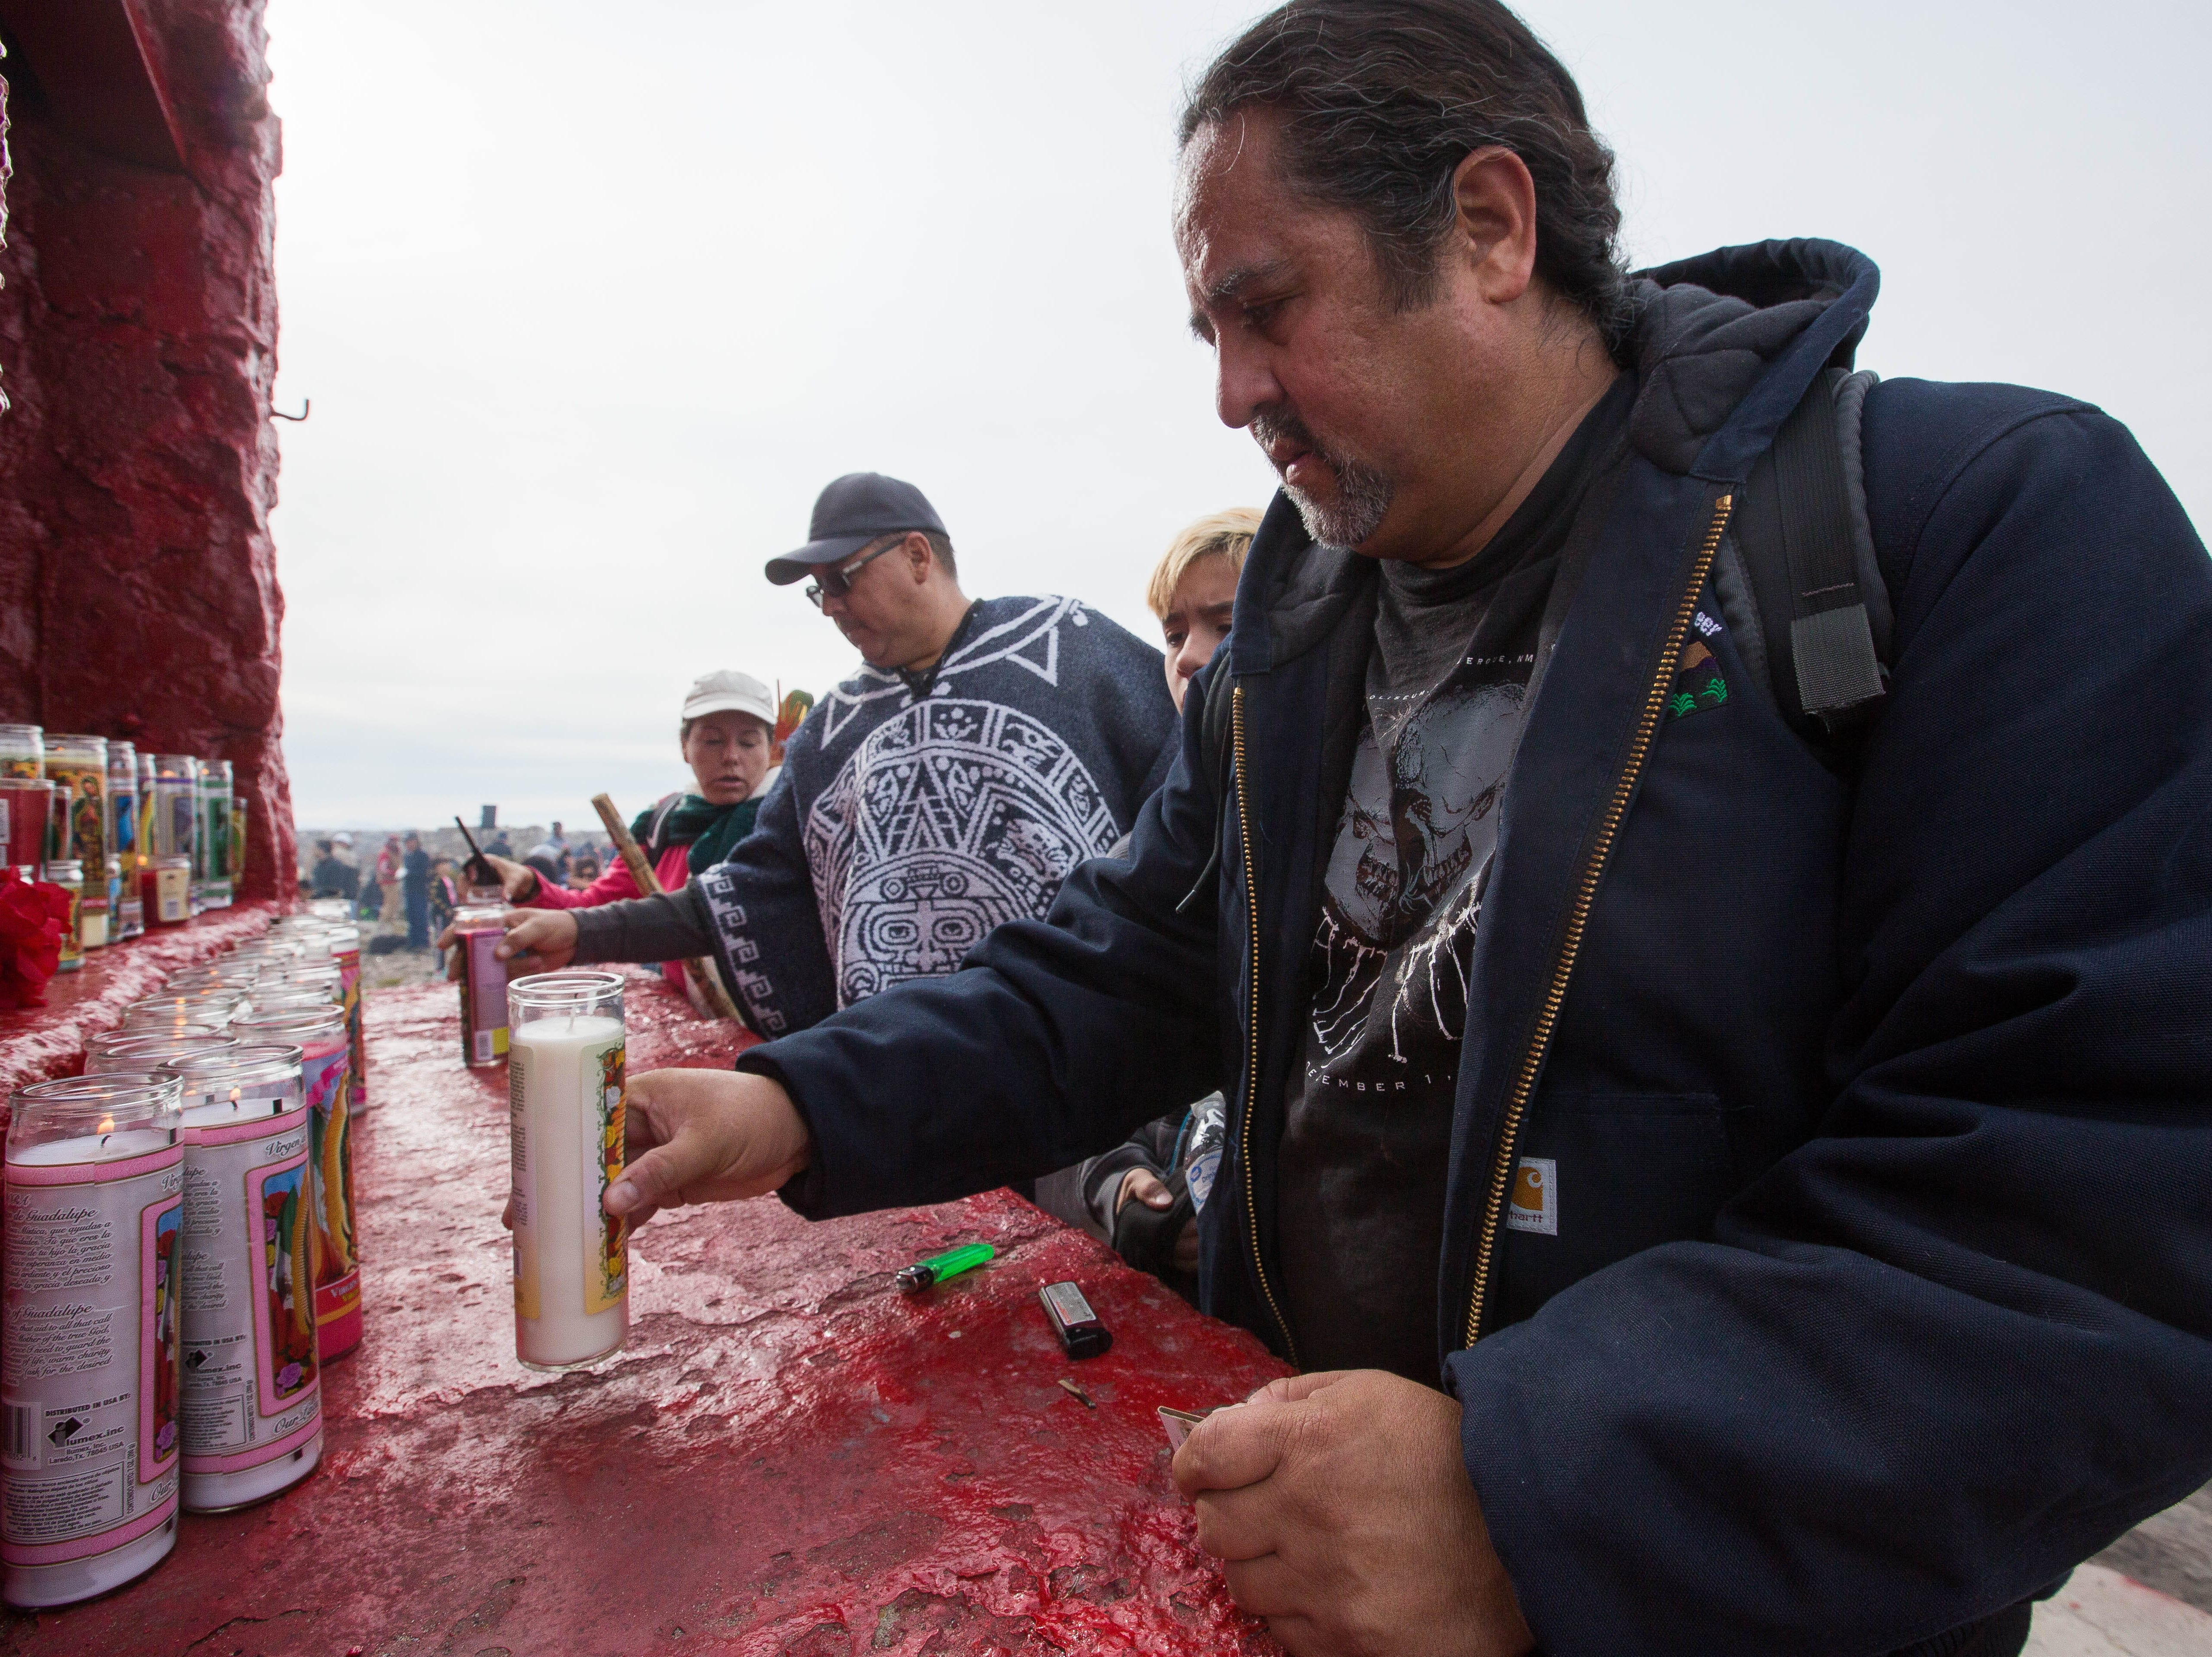 Juan Carlos Benavides, right, and his son Alejandro Rafael Benavides, 10, left, place a lit candle on the alter at the top to the Tortugas Mountain on Tuesday Dec. 11, 2018. Benavides hiked up the mountain during the pilgrimage to pray for their family during the second day of the Fiesta of Our Lady of Guadalupe.